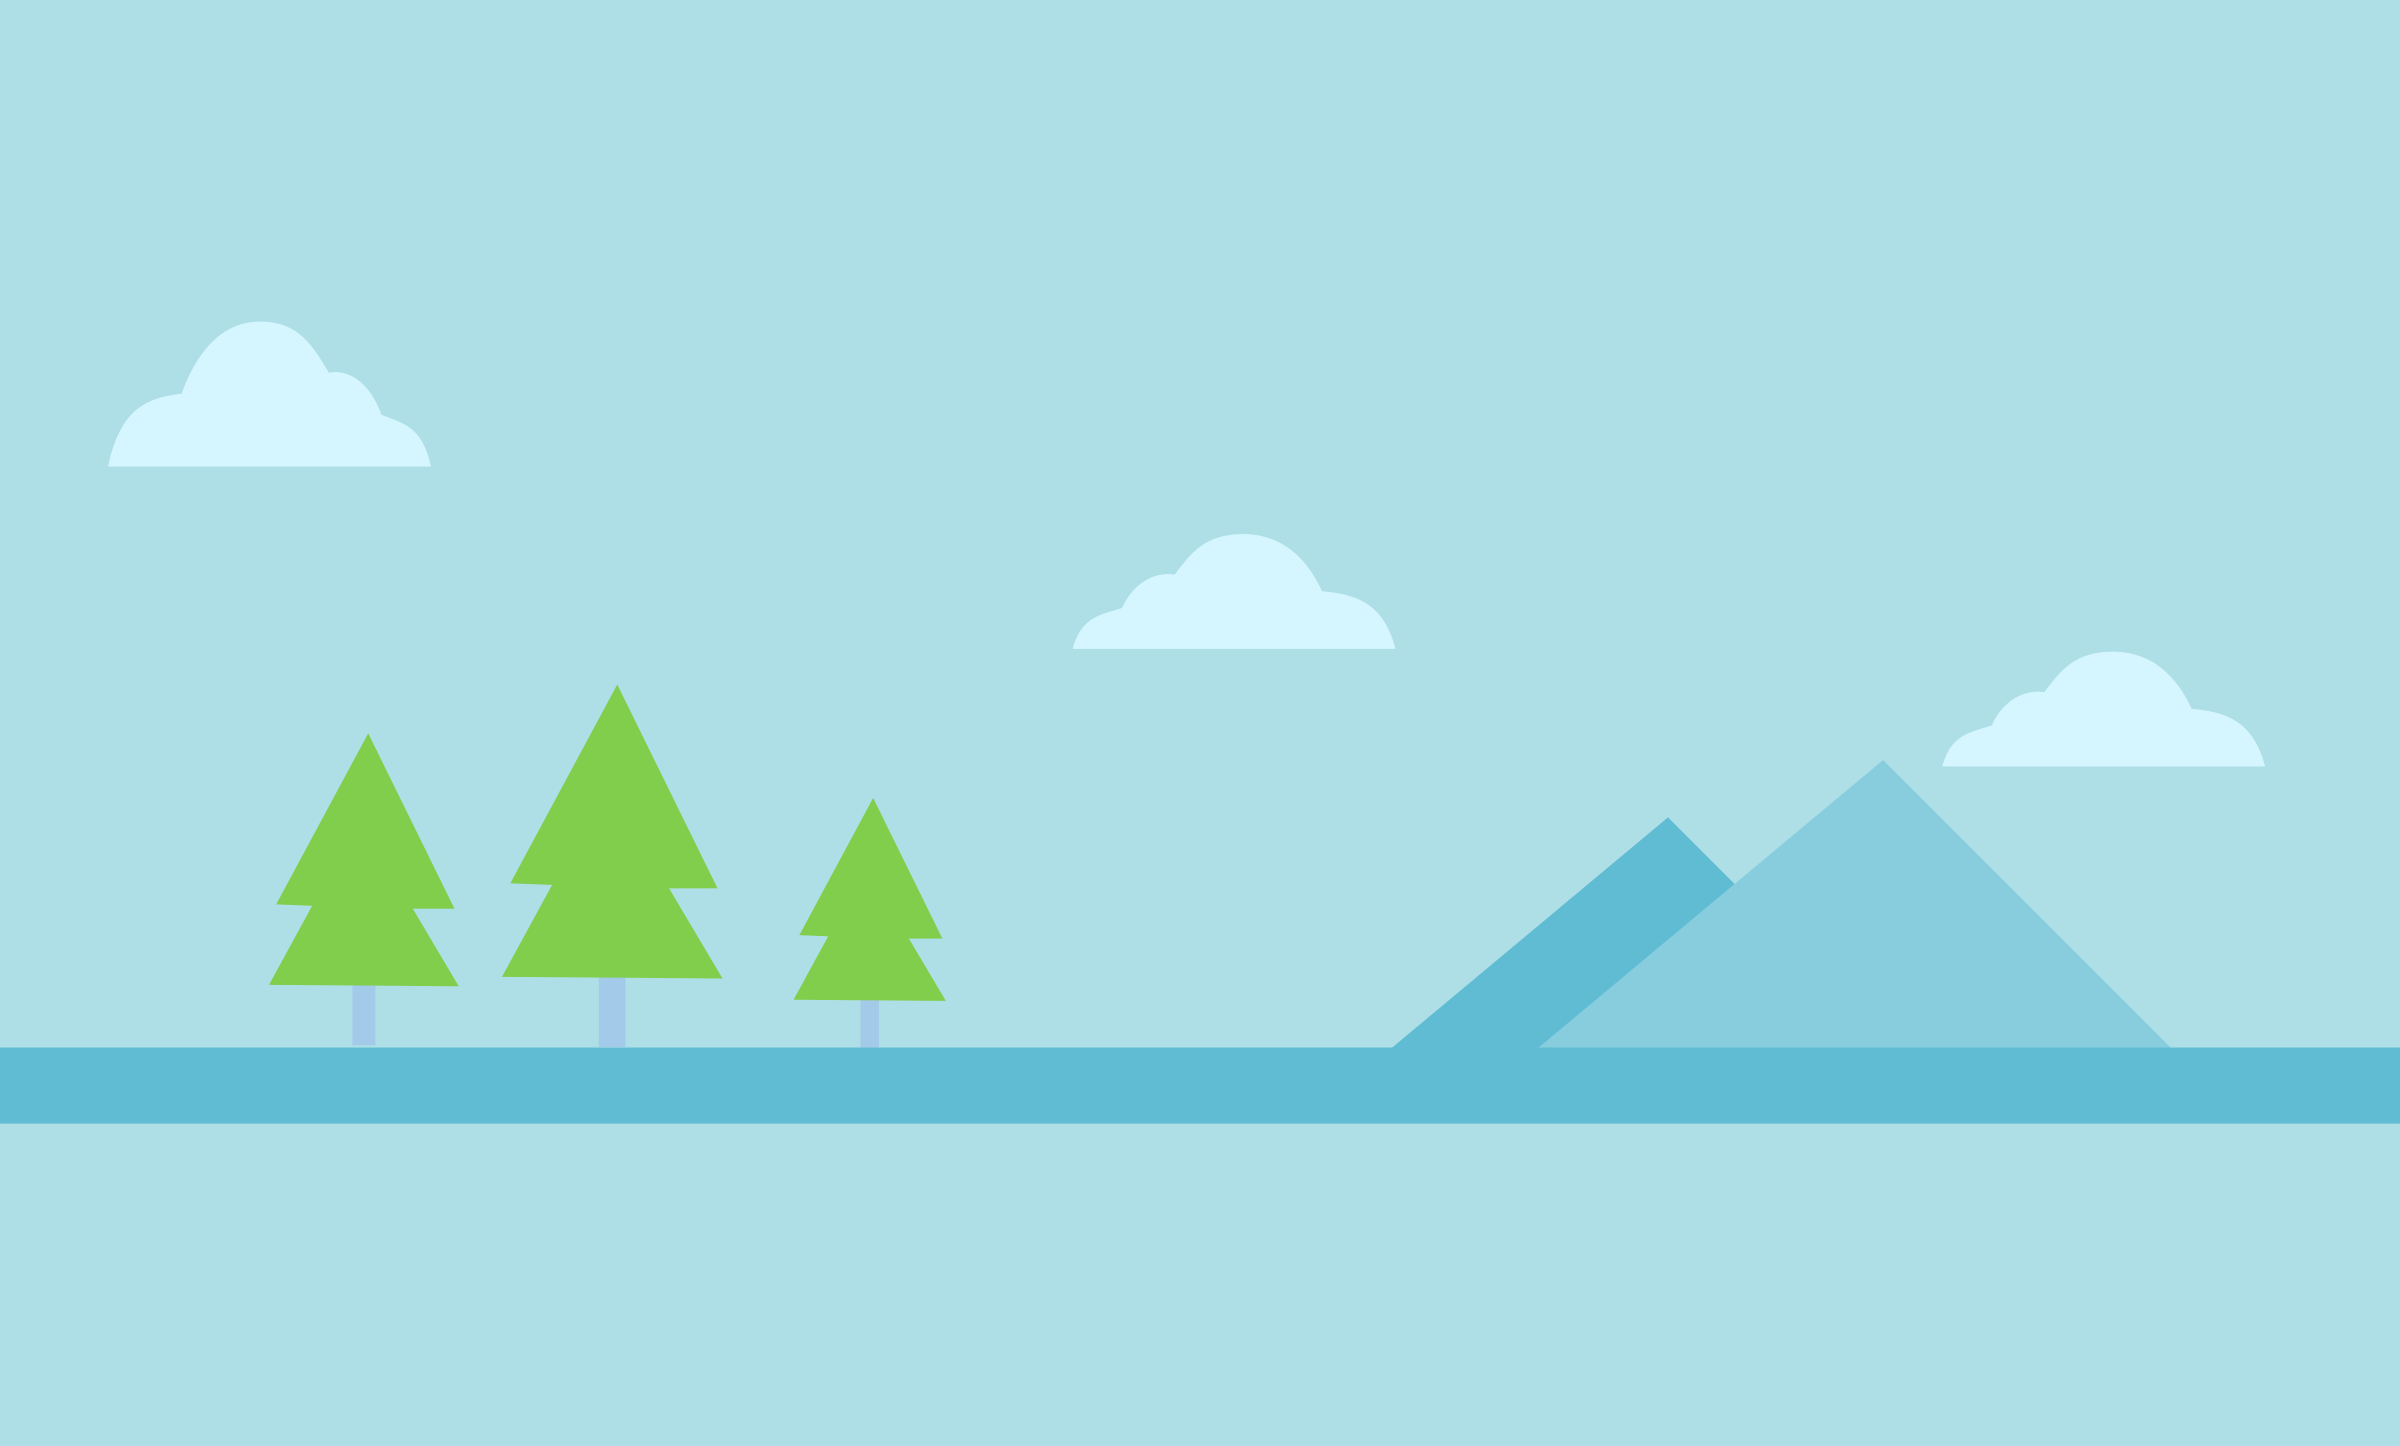 Simple Nature Banner by j4p4n